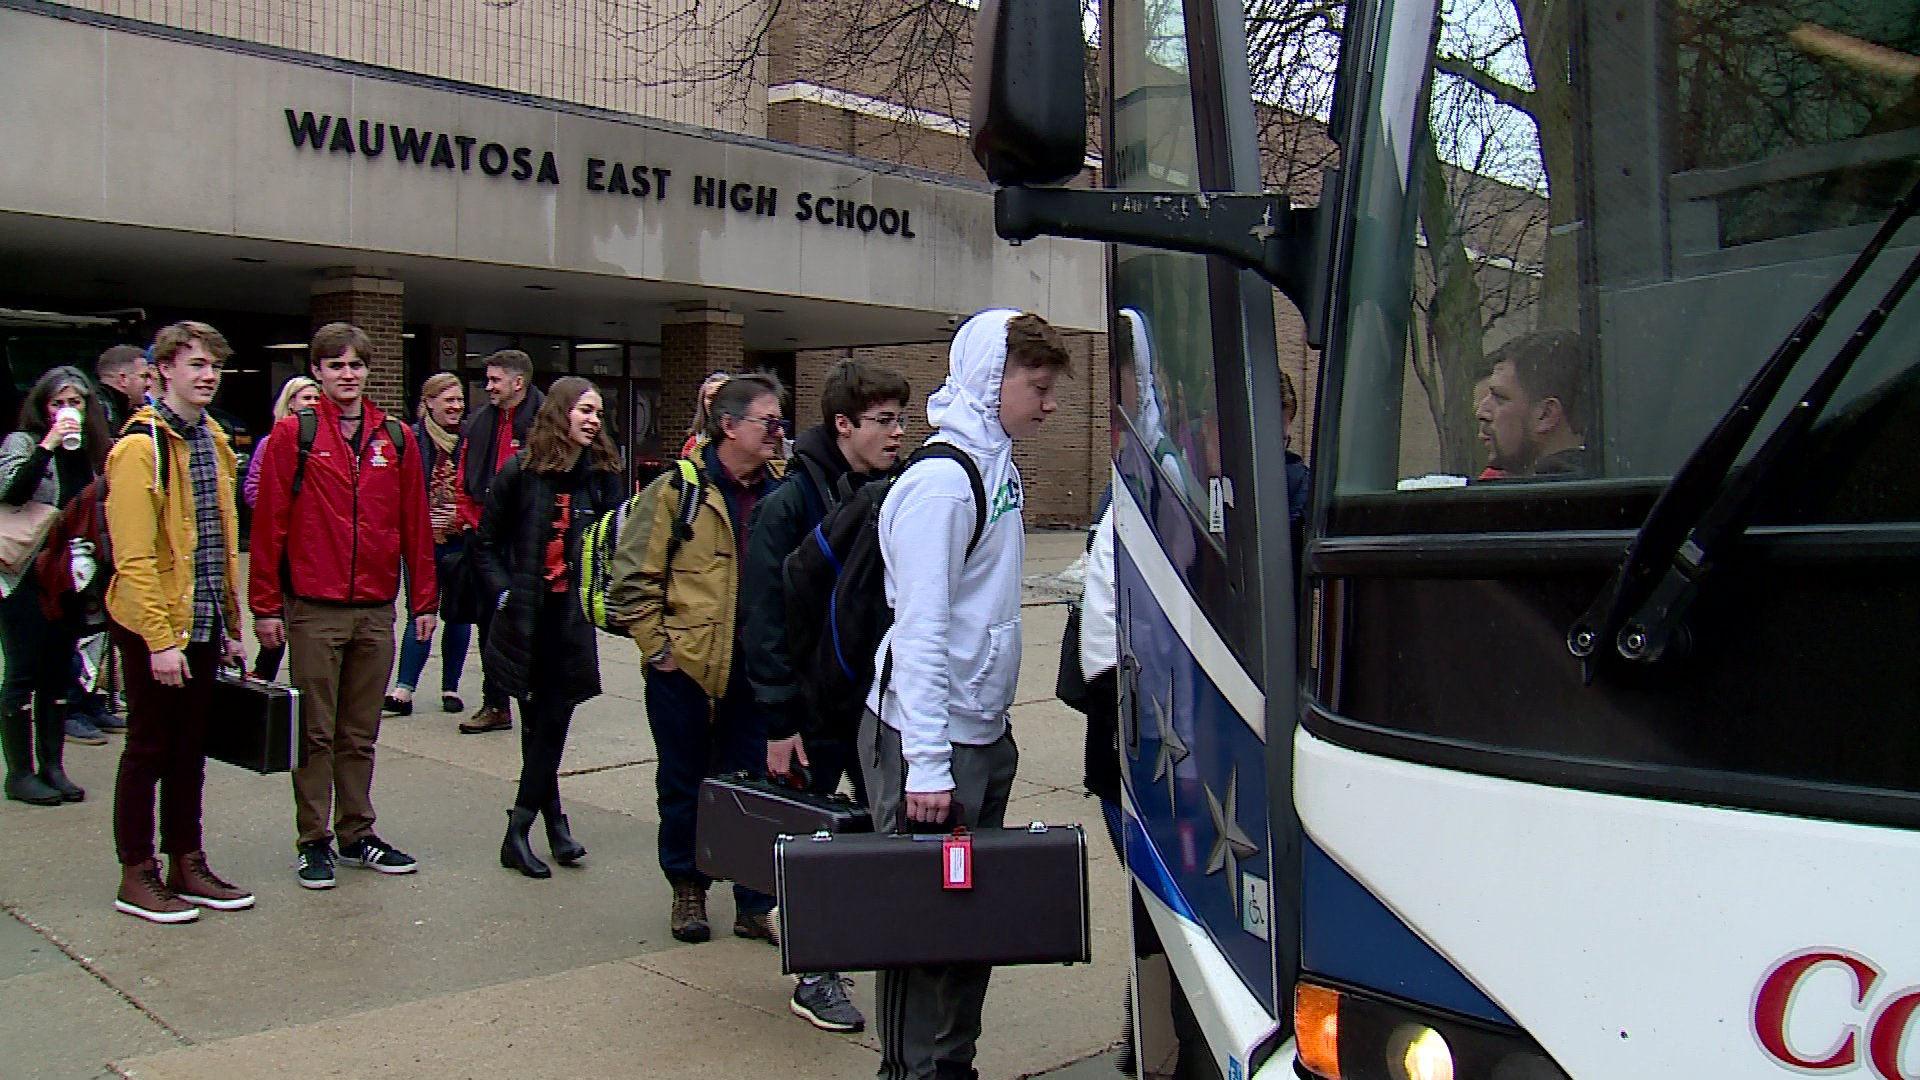 Wauwatosa East Hs Band Heading To Ireland To Perform At St Patrick S Festival Parade